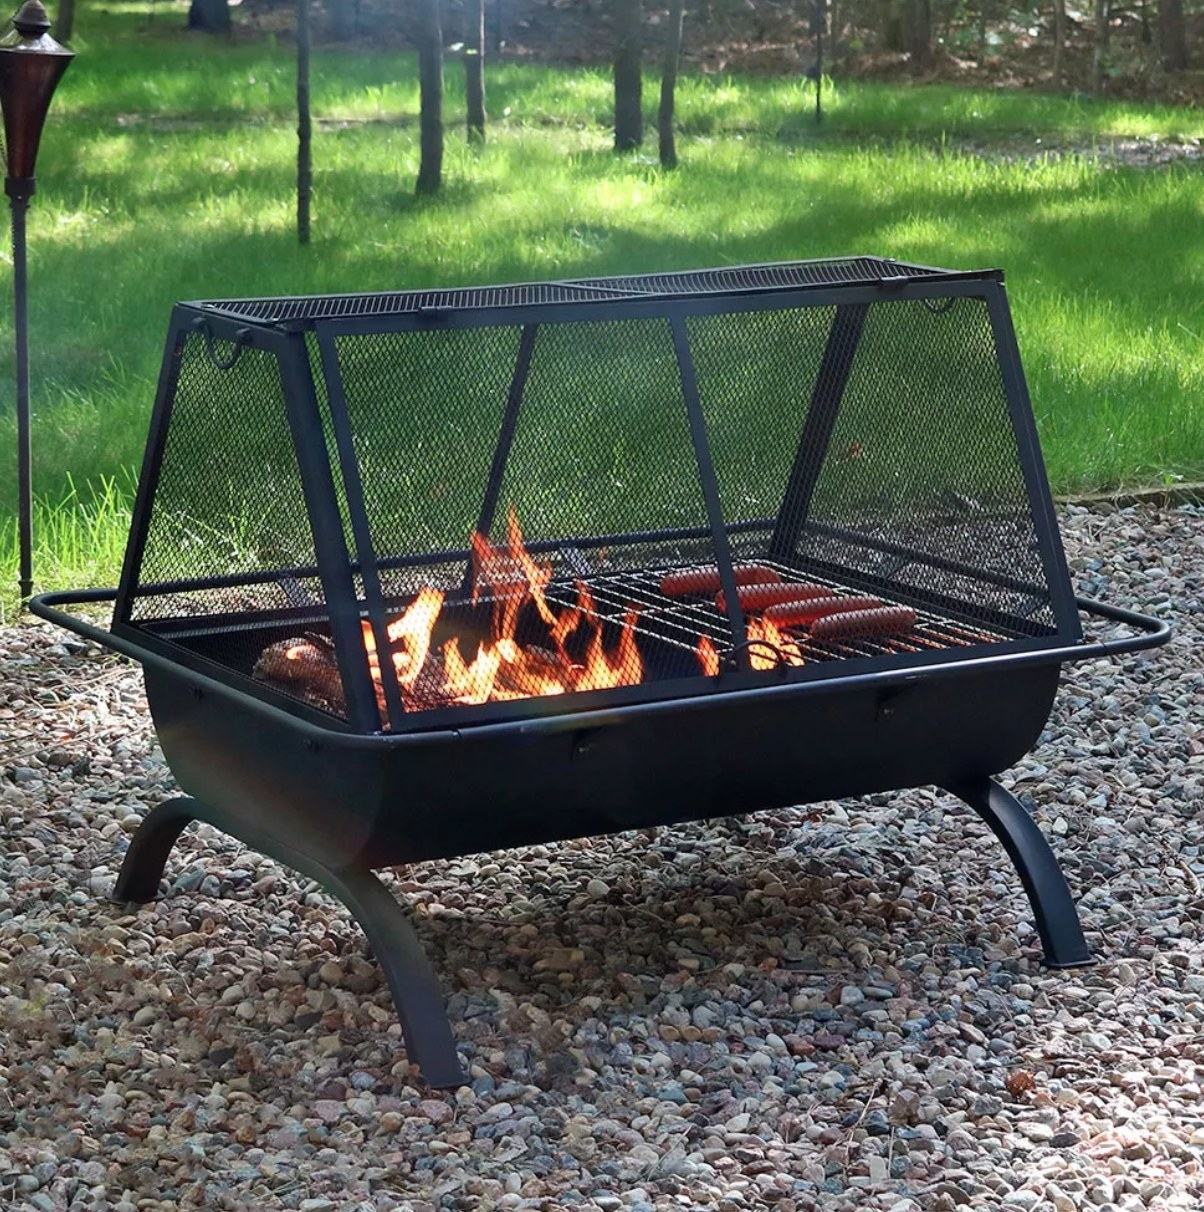 The wood-burning fire pit